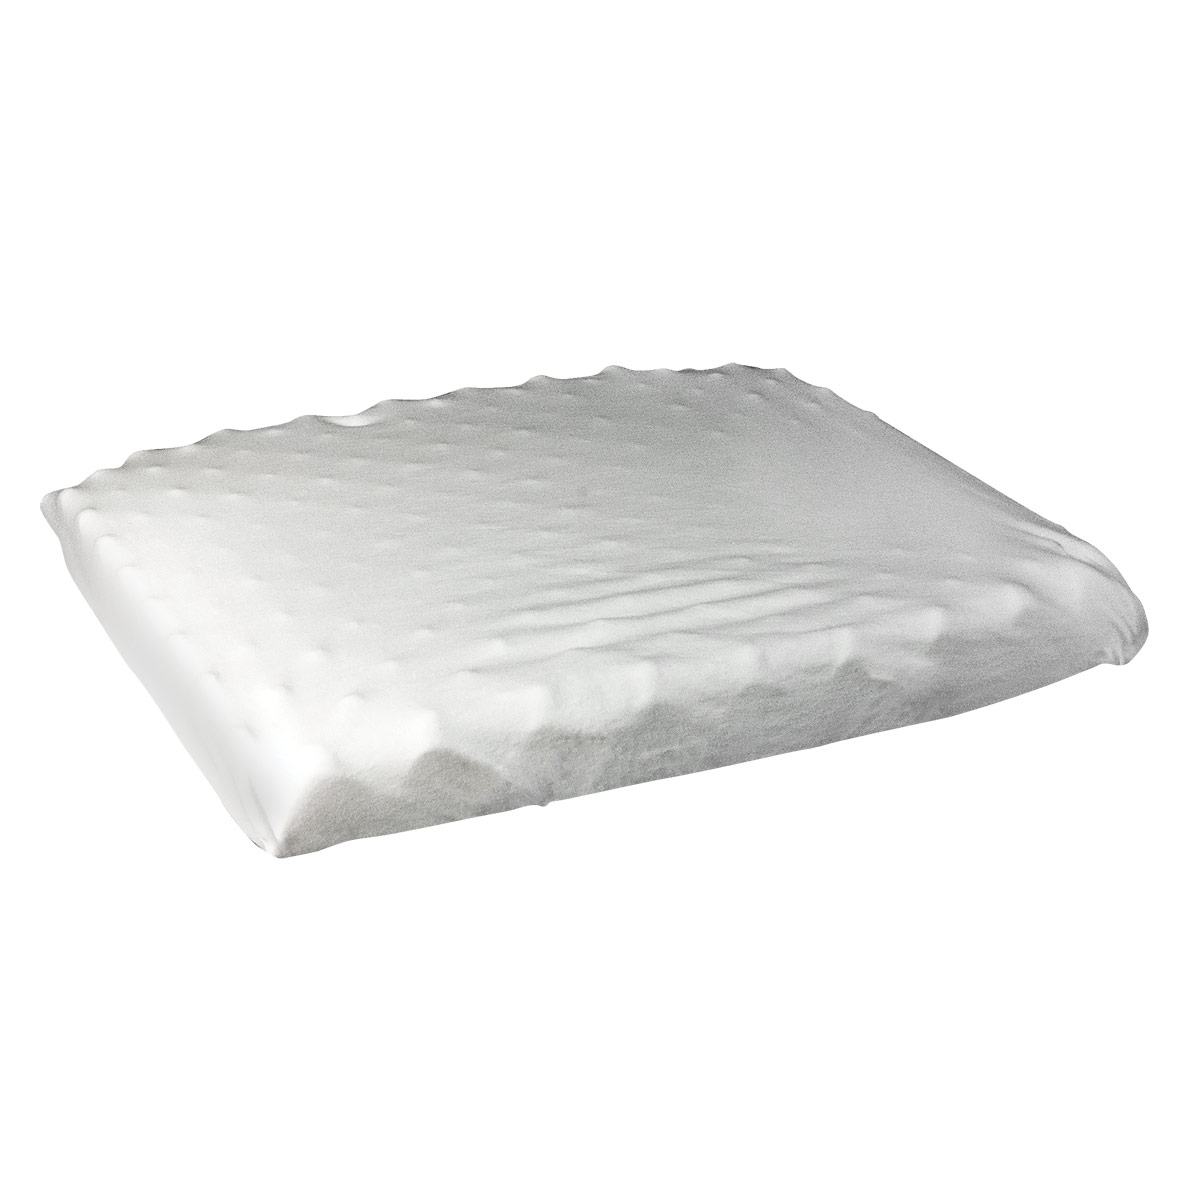 Eggcrate Seat Cushion with Poly-Cotton Cover